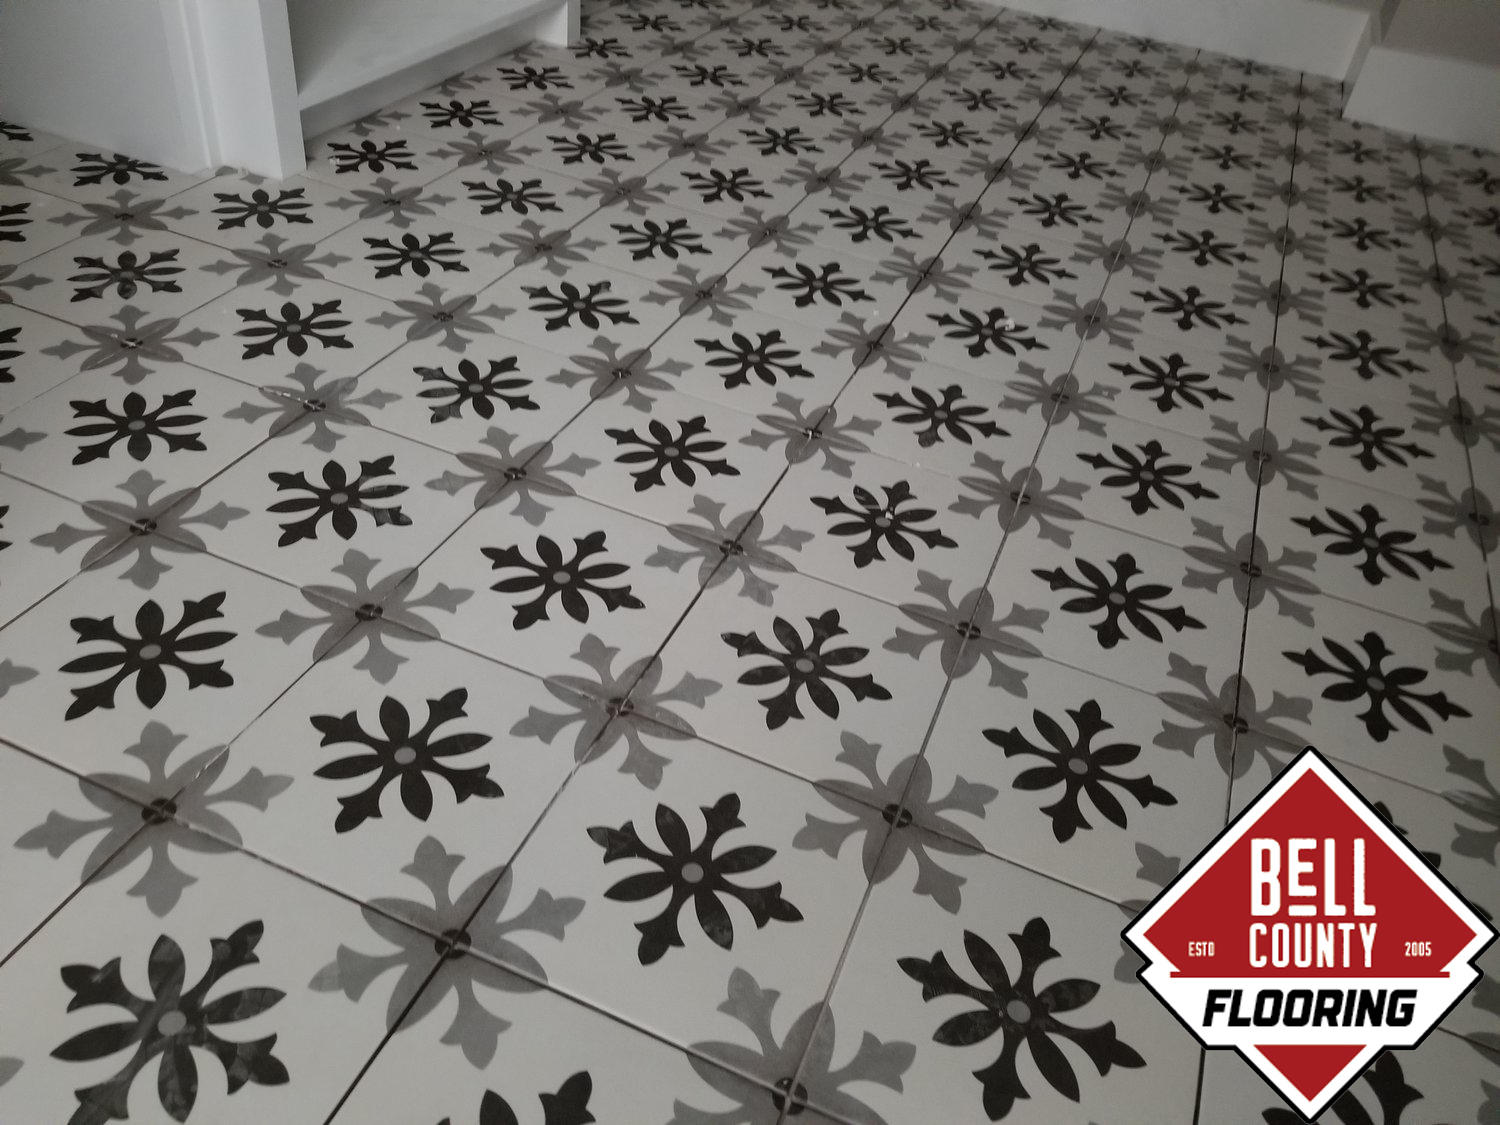 Bell County Flooring image 37